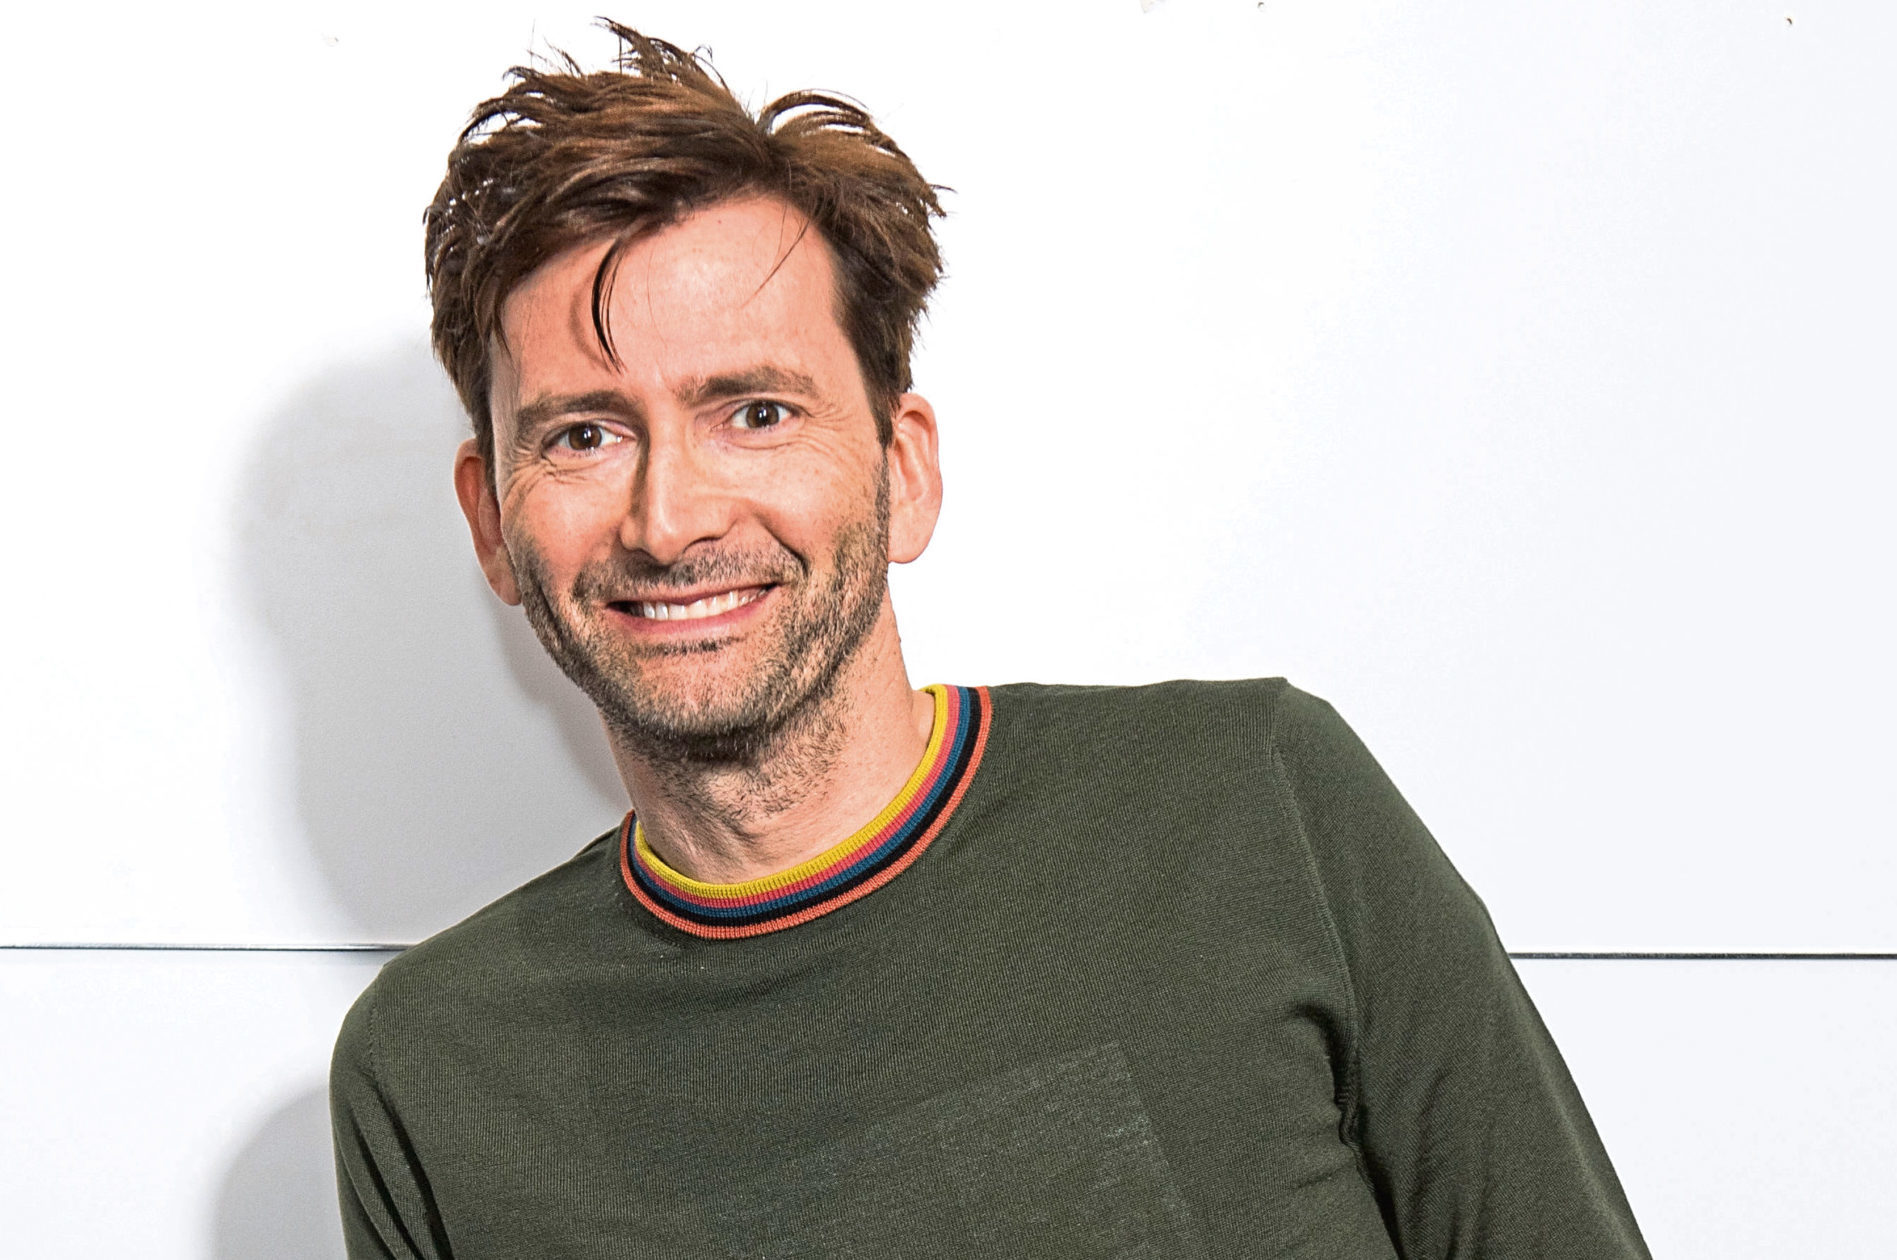 David Tennant admits his attic is full of Doctor Who souvenirs and memorabilia